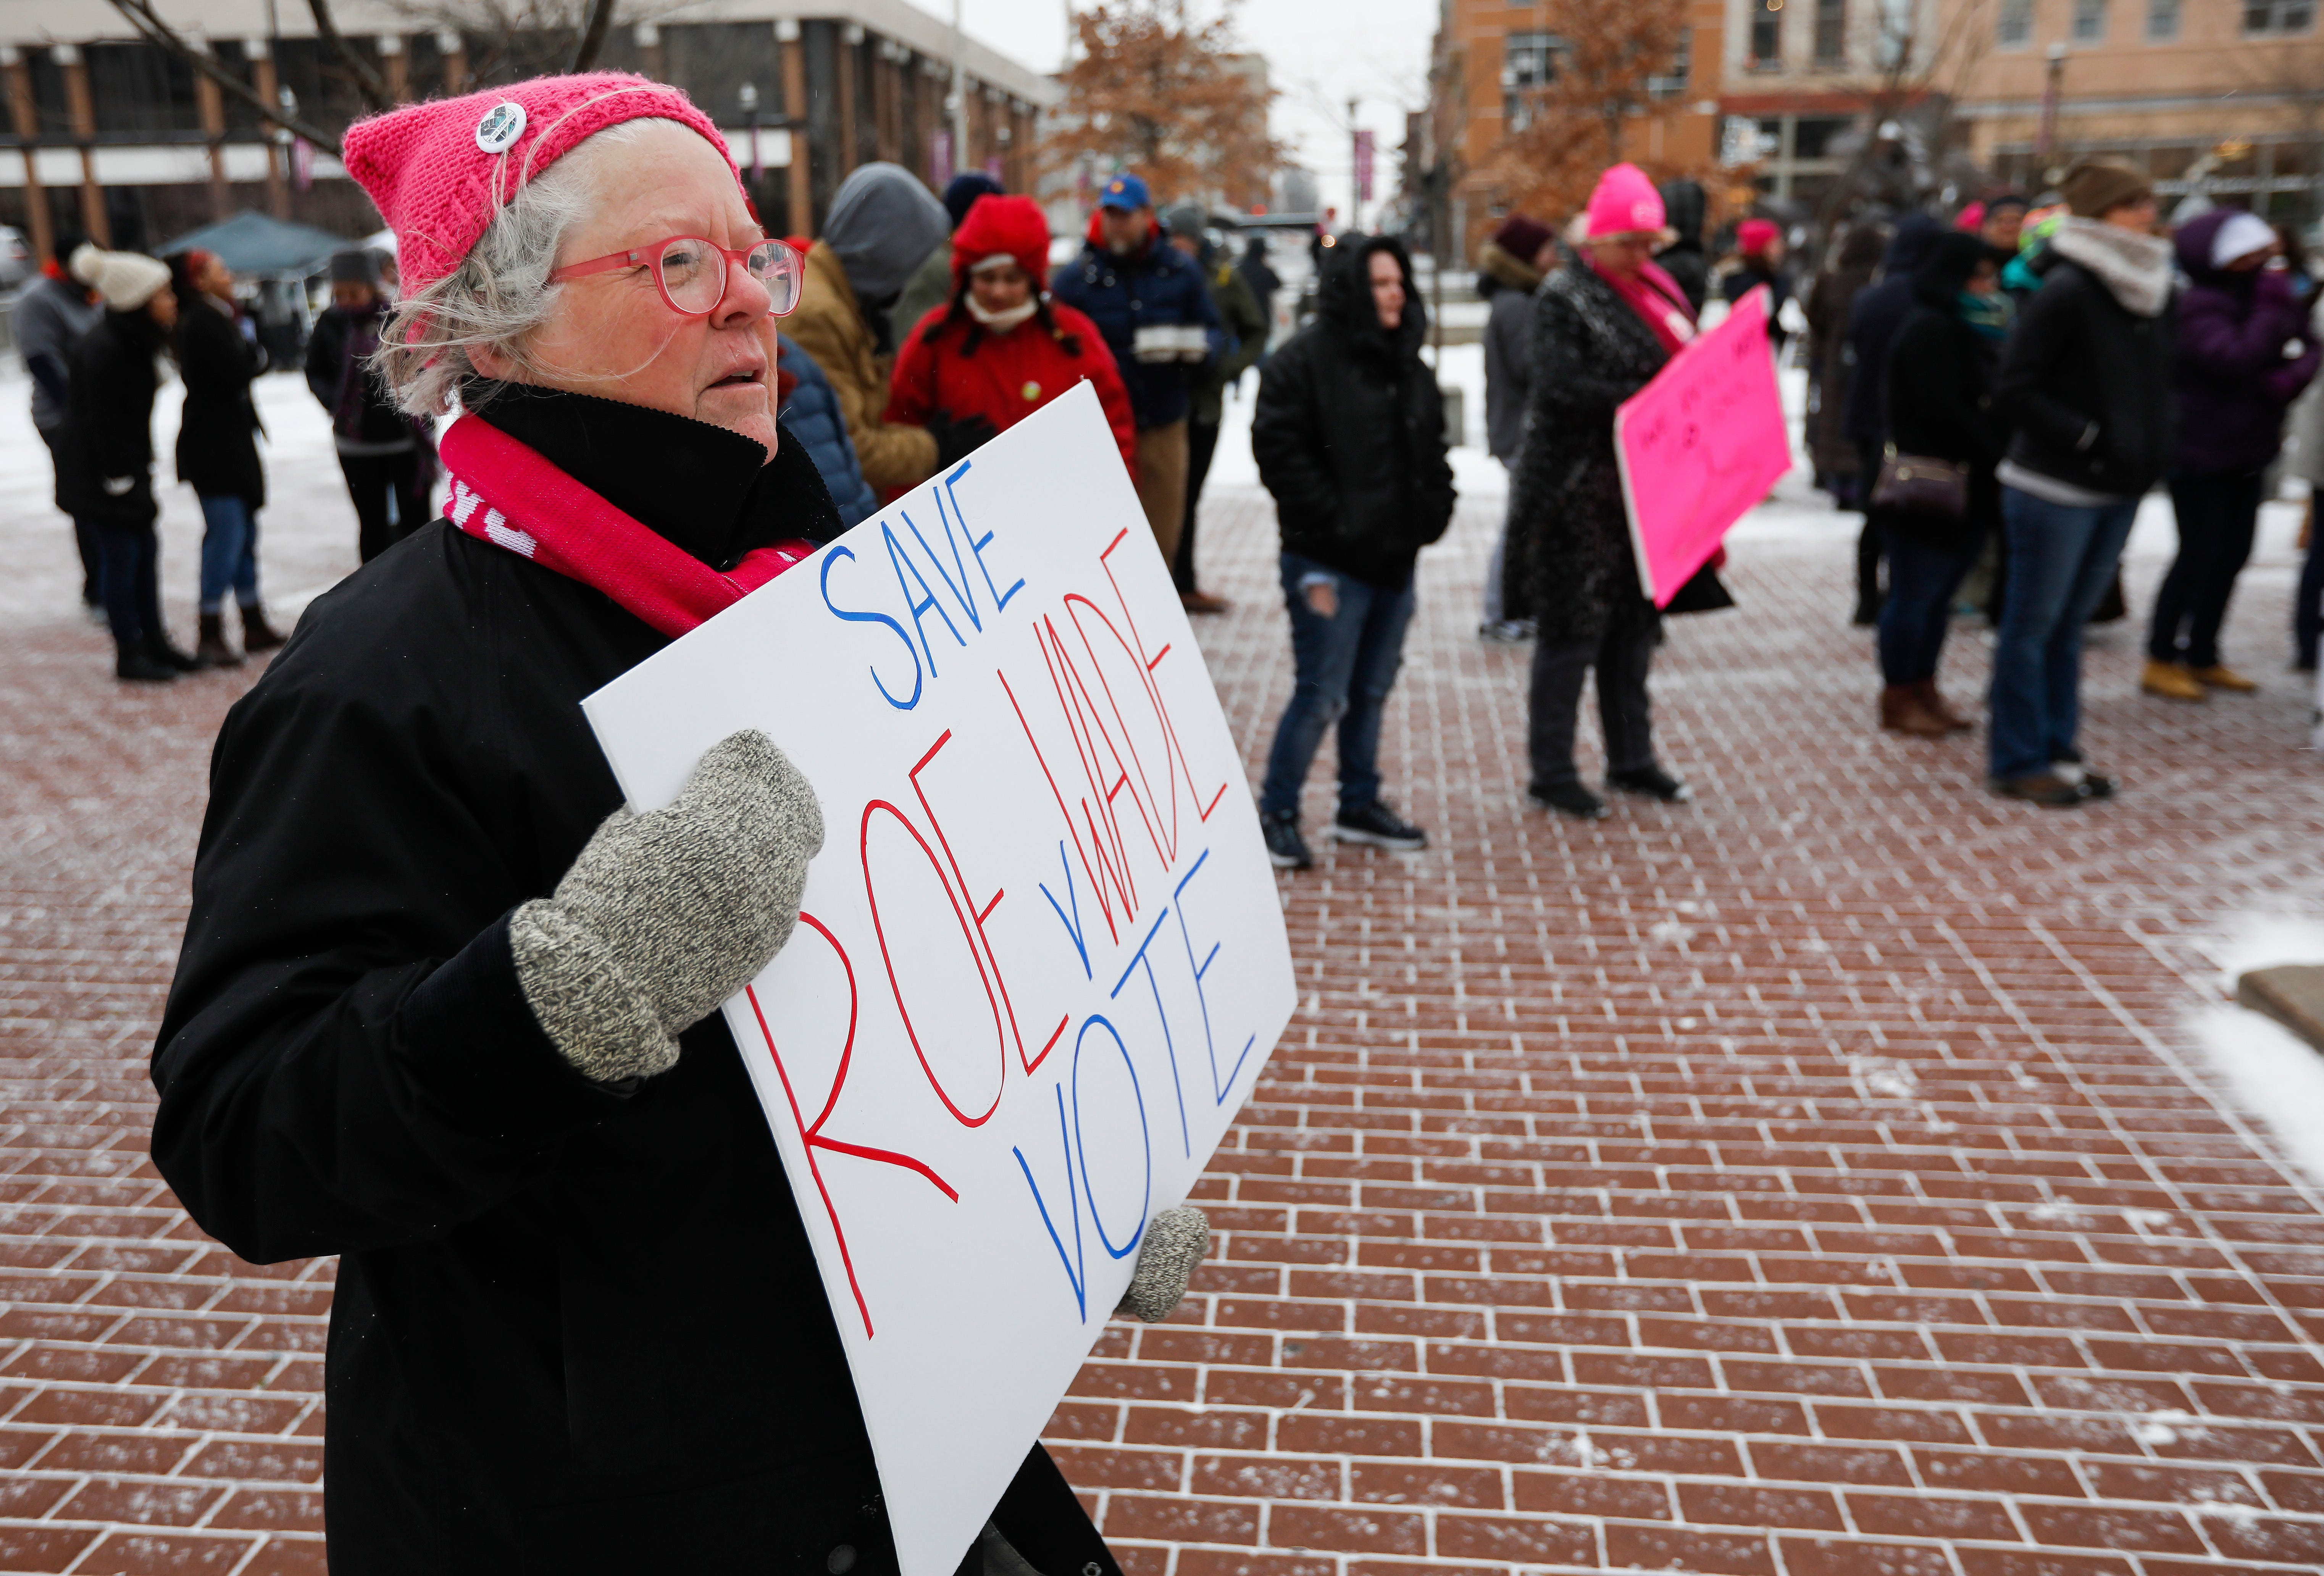 Dee Ogilvy holds up a sign while listening to speakers during the Women's March at Park Central Square on Saturday, Jan. 19, 2019.